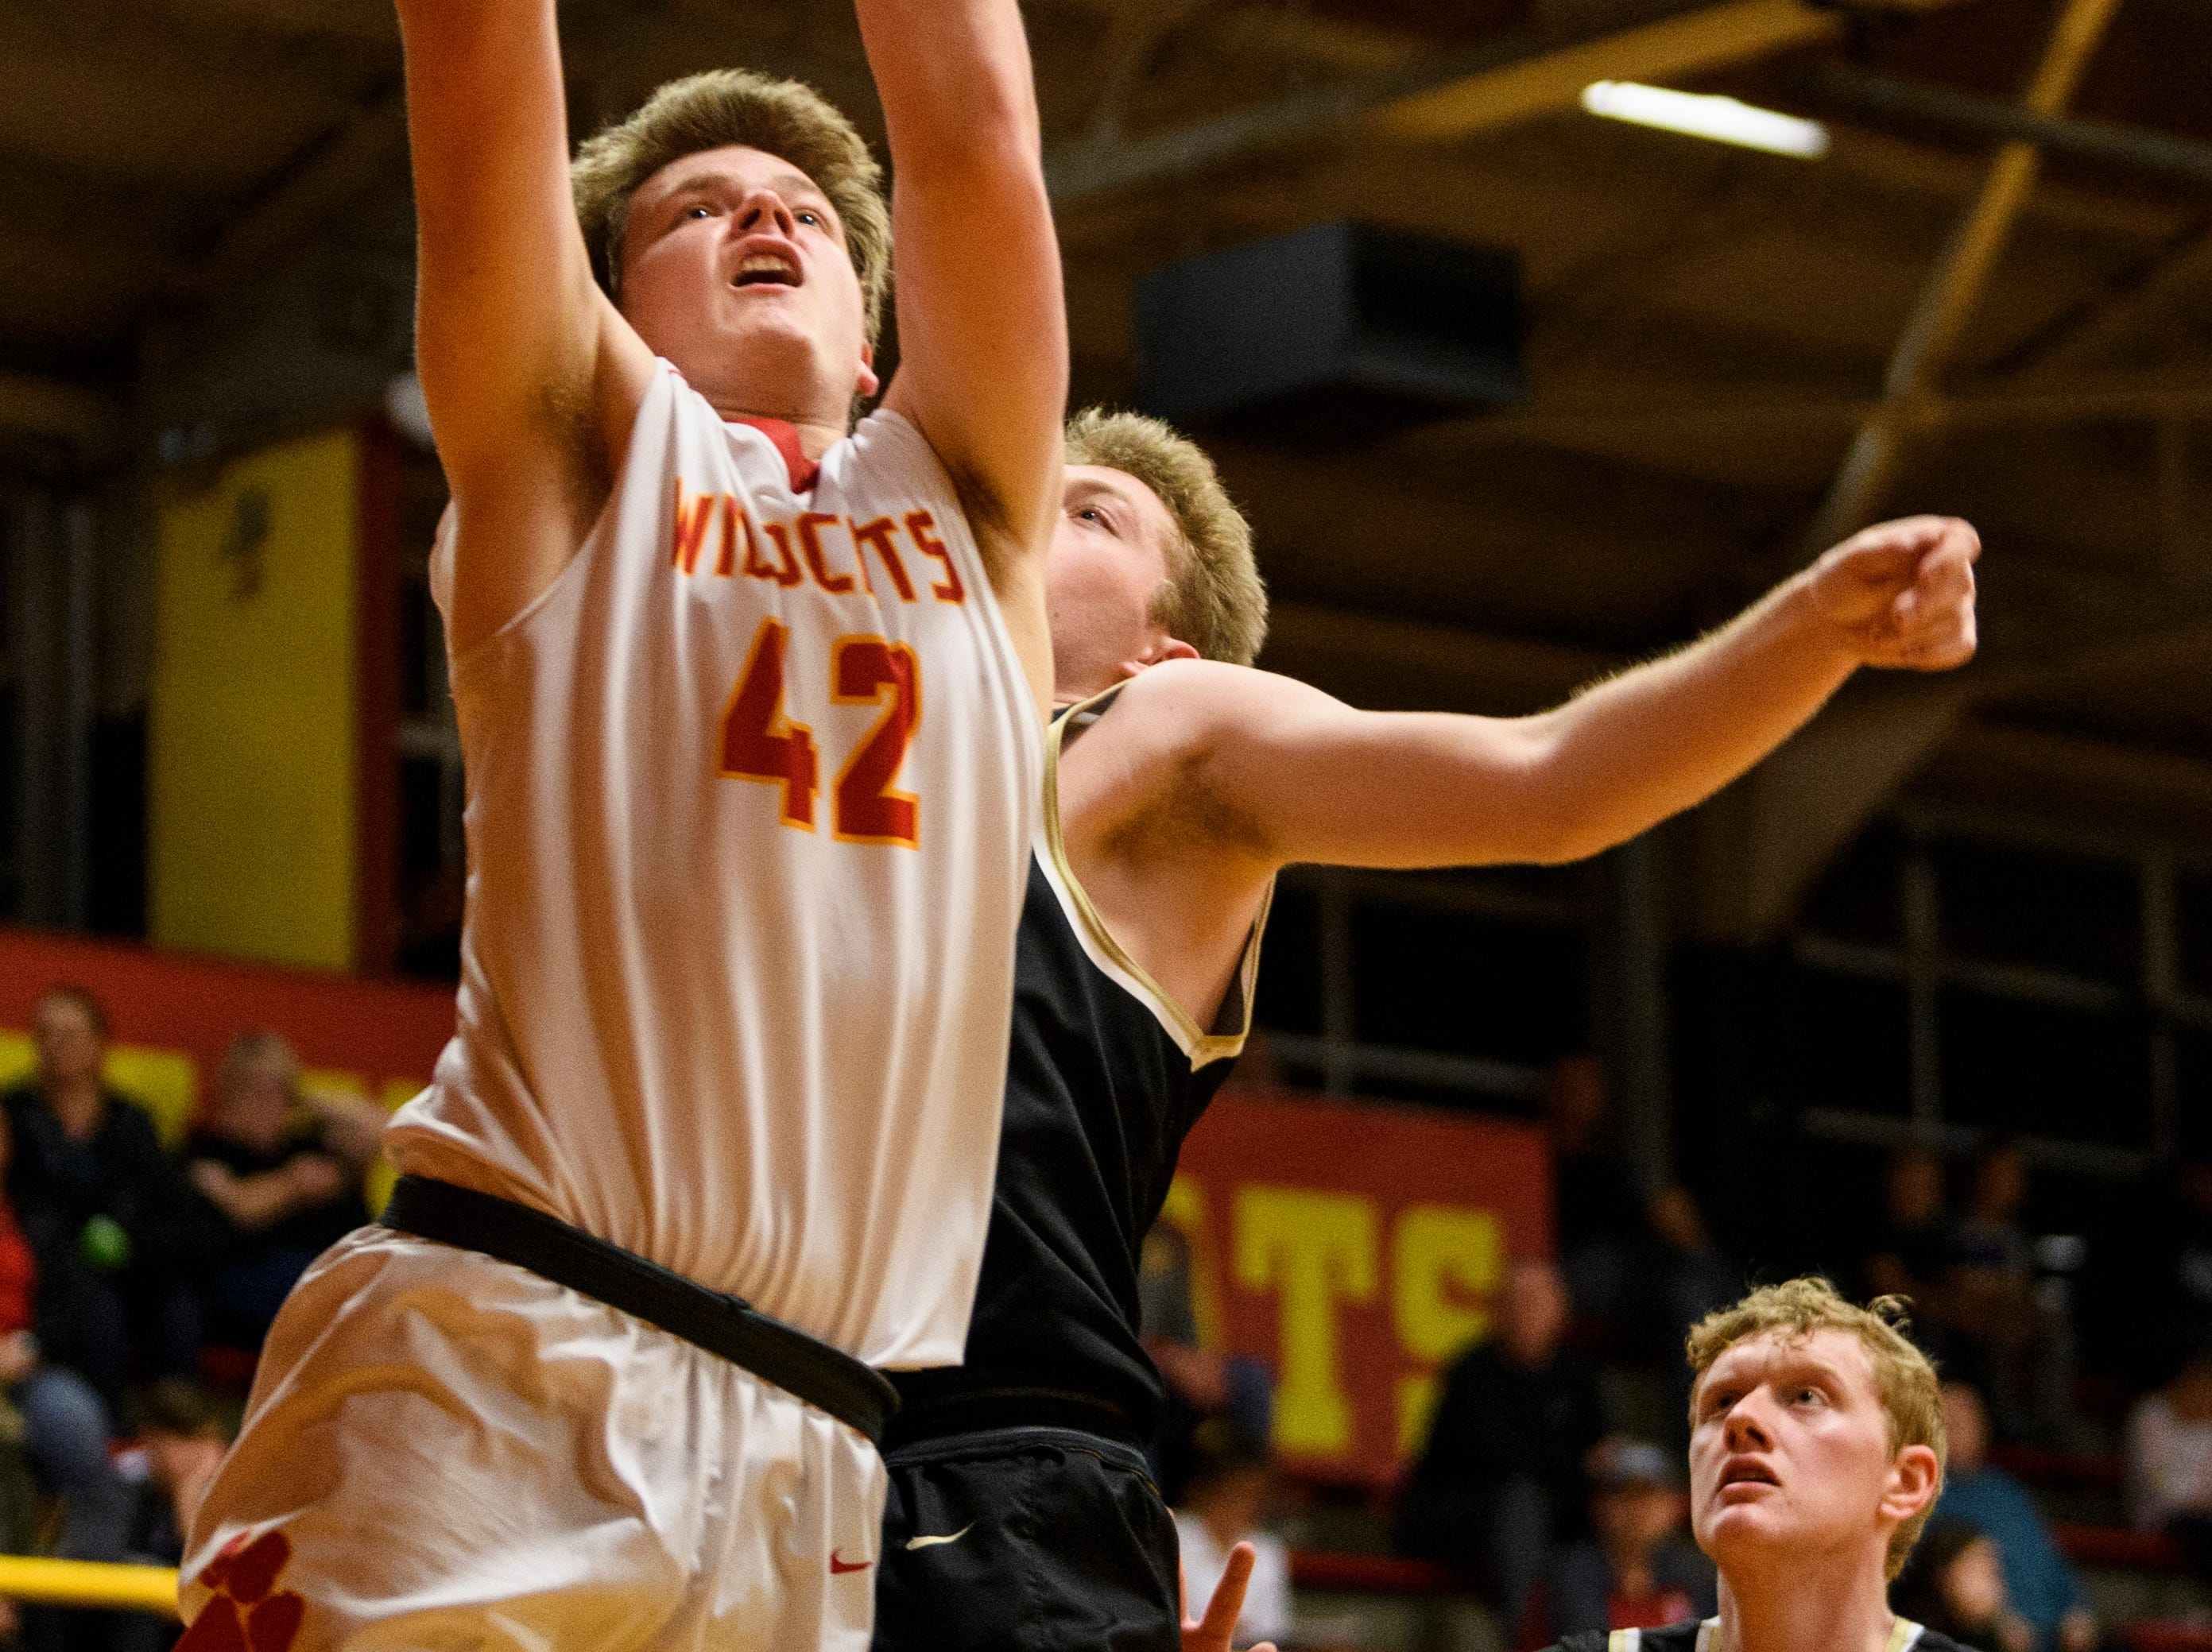 Mater Dei's Tyler Phelps (42) advances to the net during the third quarter against the Boonville Pioneers at Mater Dei High School in Evansville, Ind., Saturday, Jan. 5, 2019. The Wildcats defeated the Pioneers, 93-65.